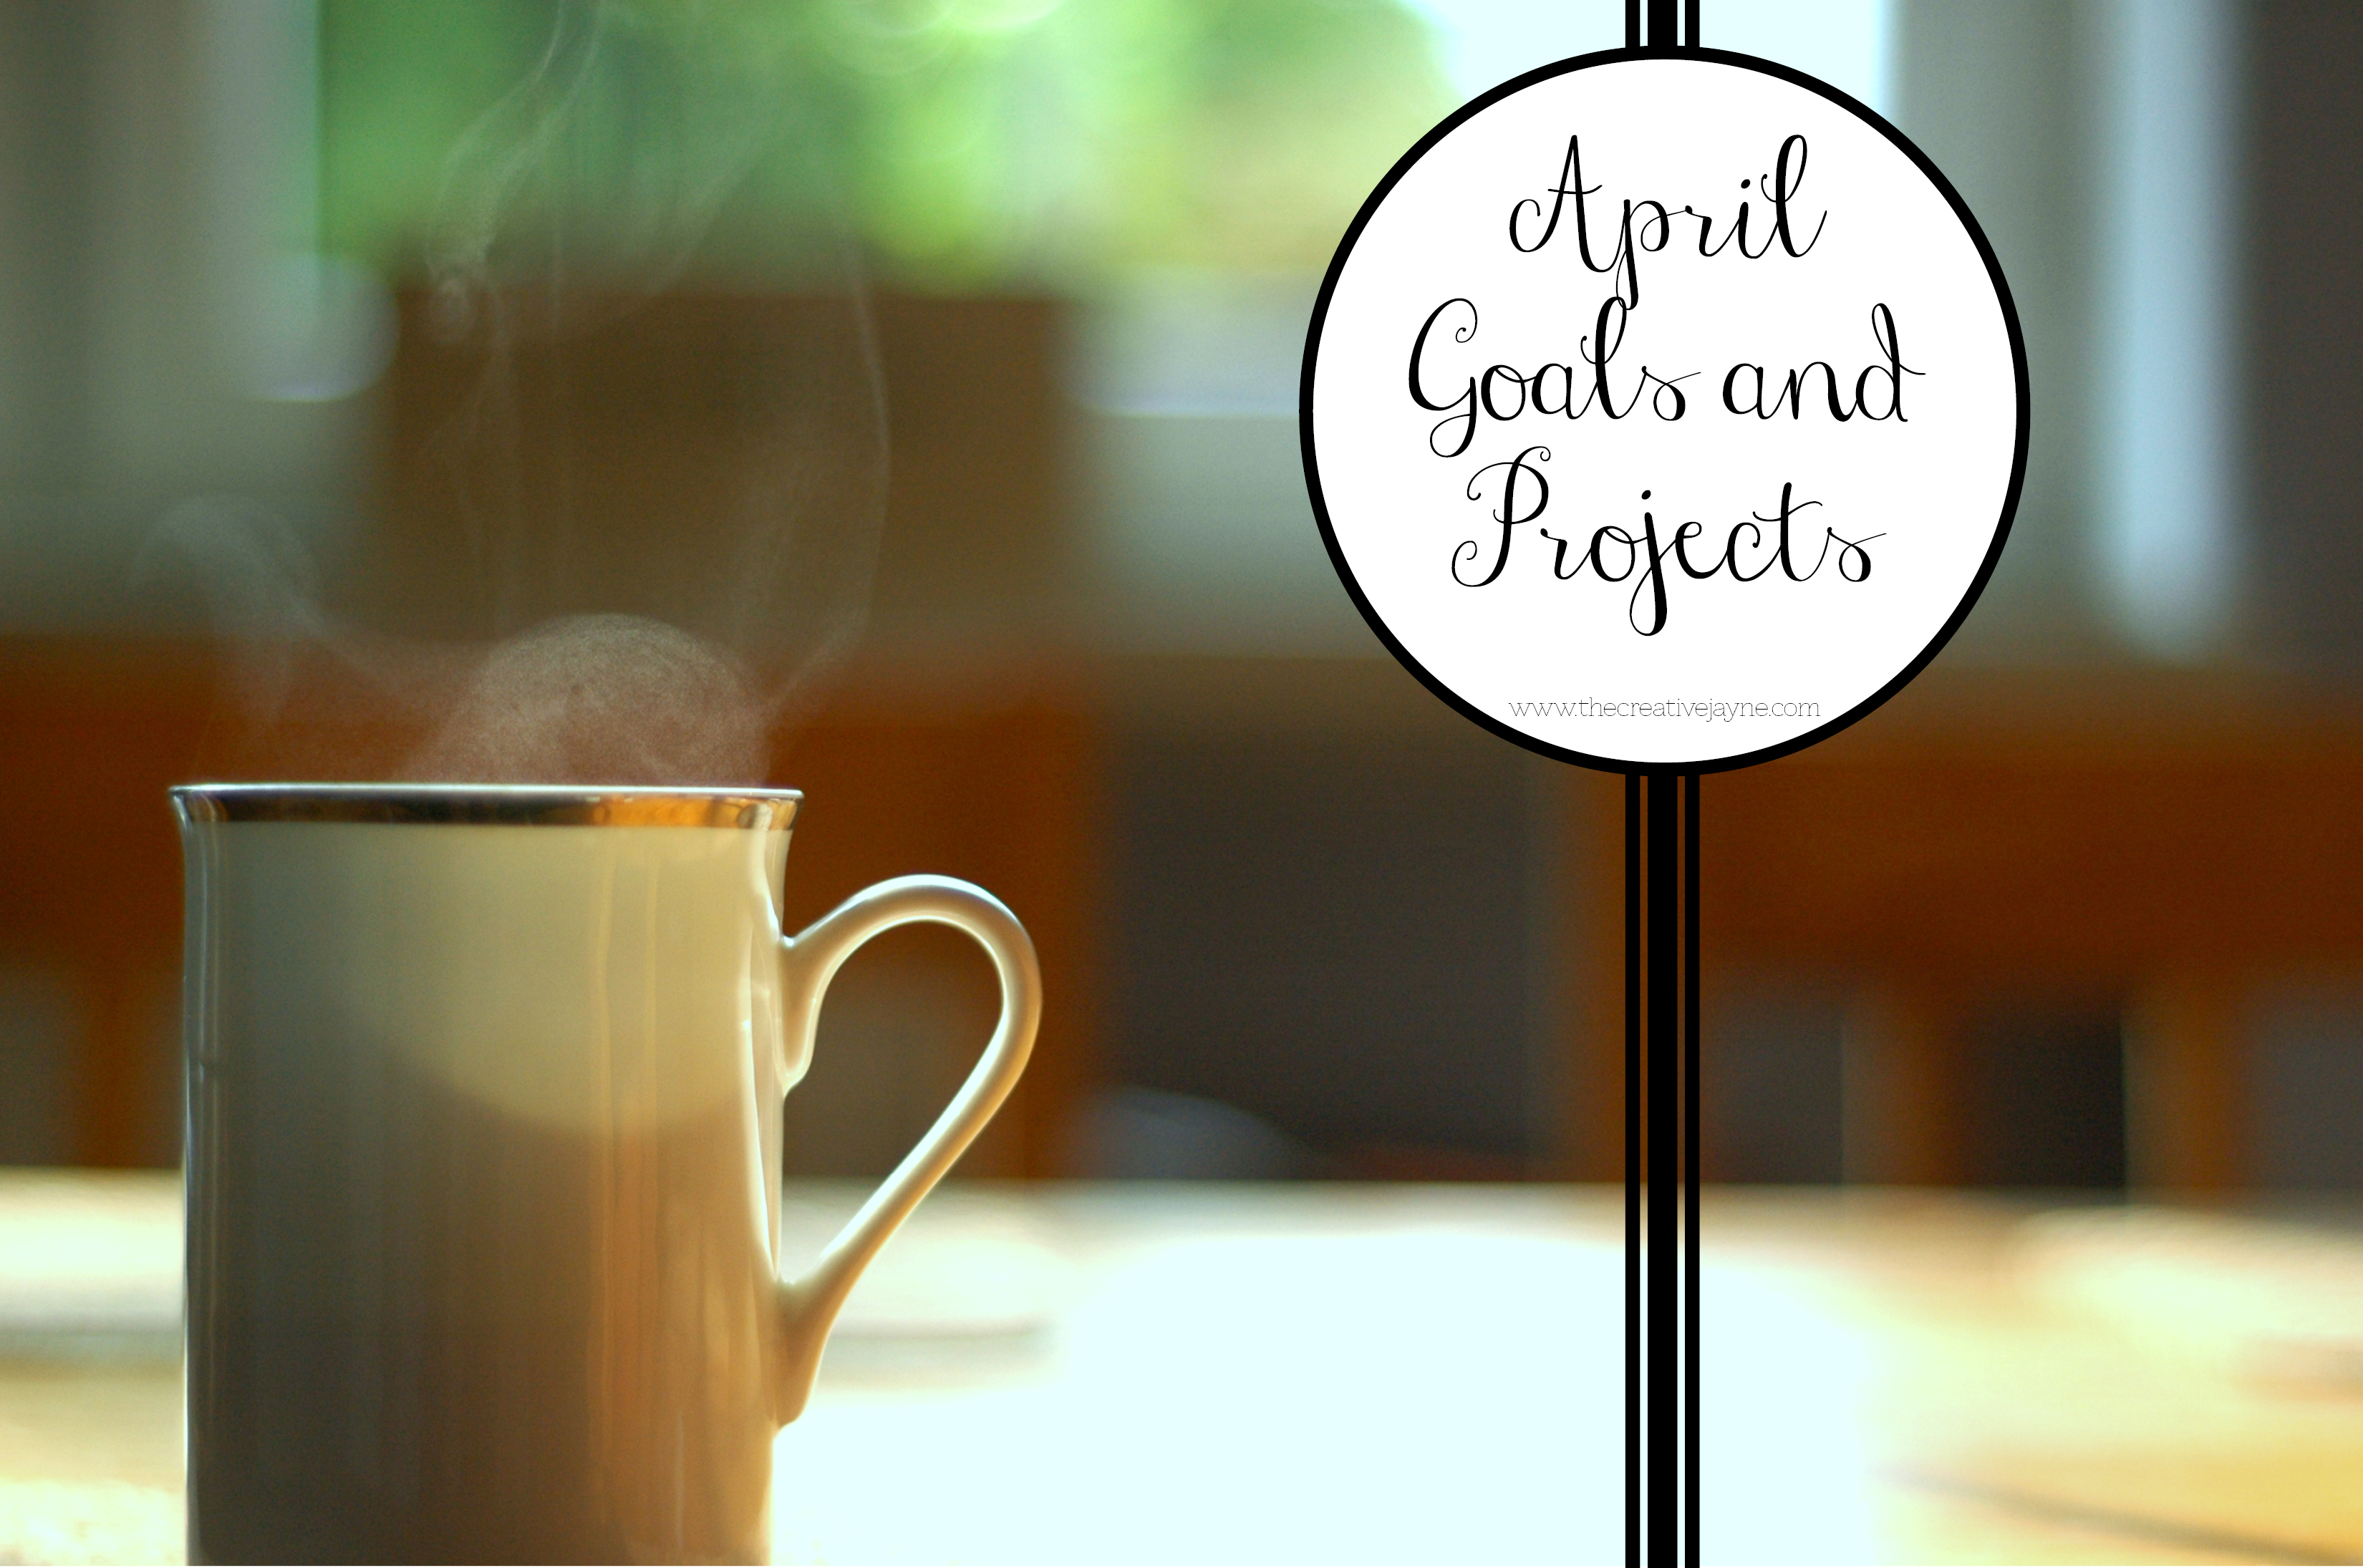 the Creative Jayne April Goals and Projects